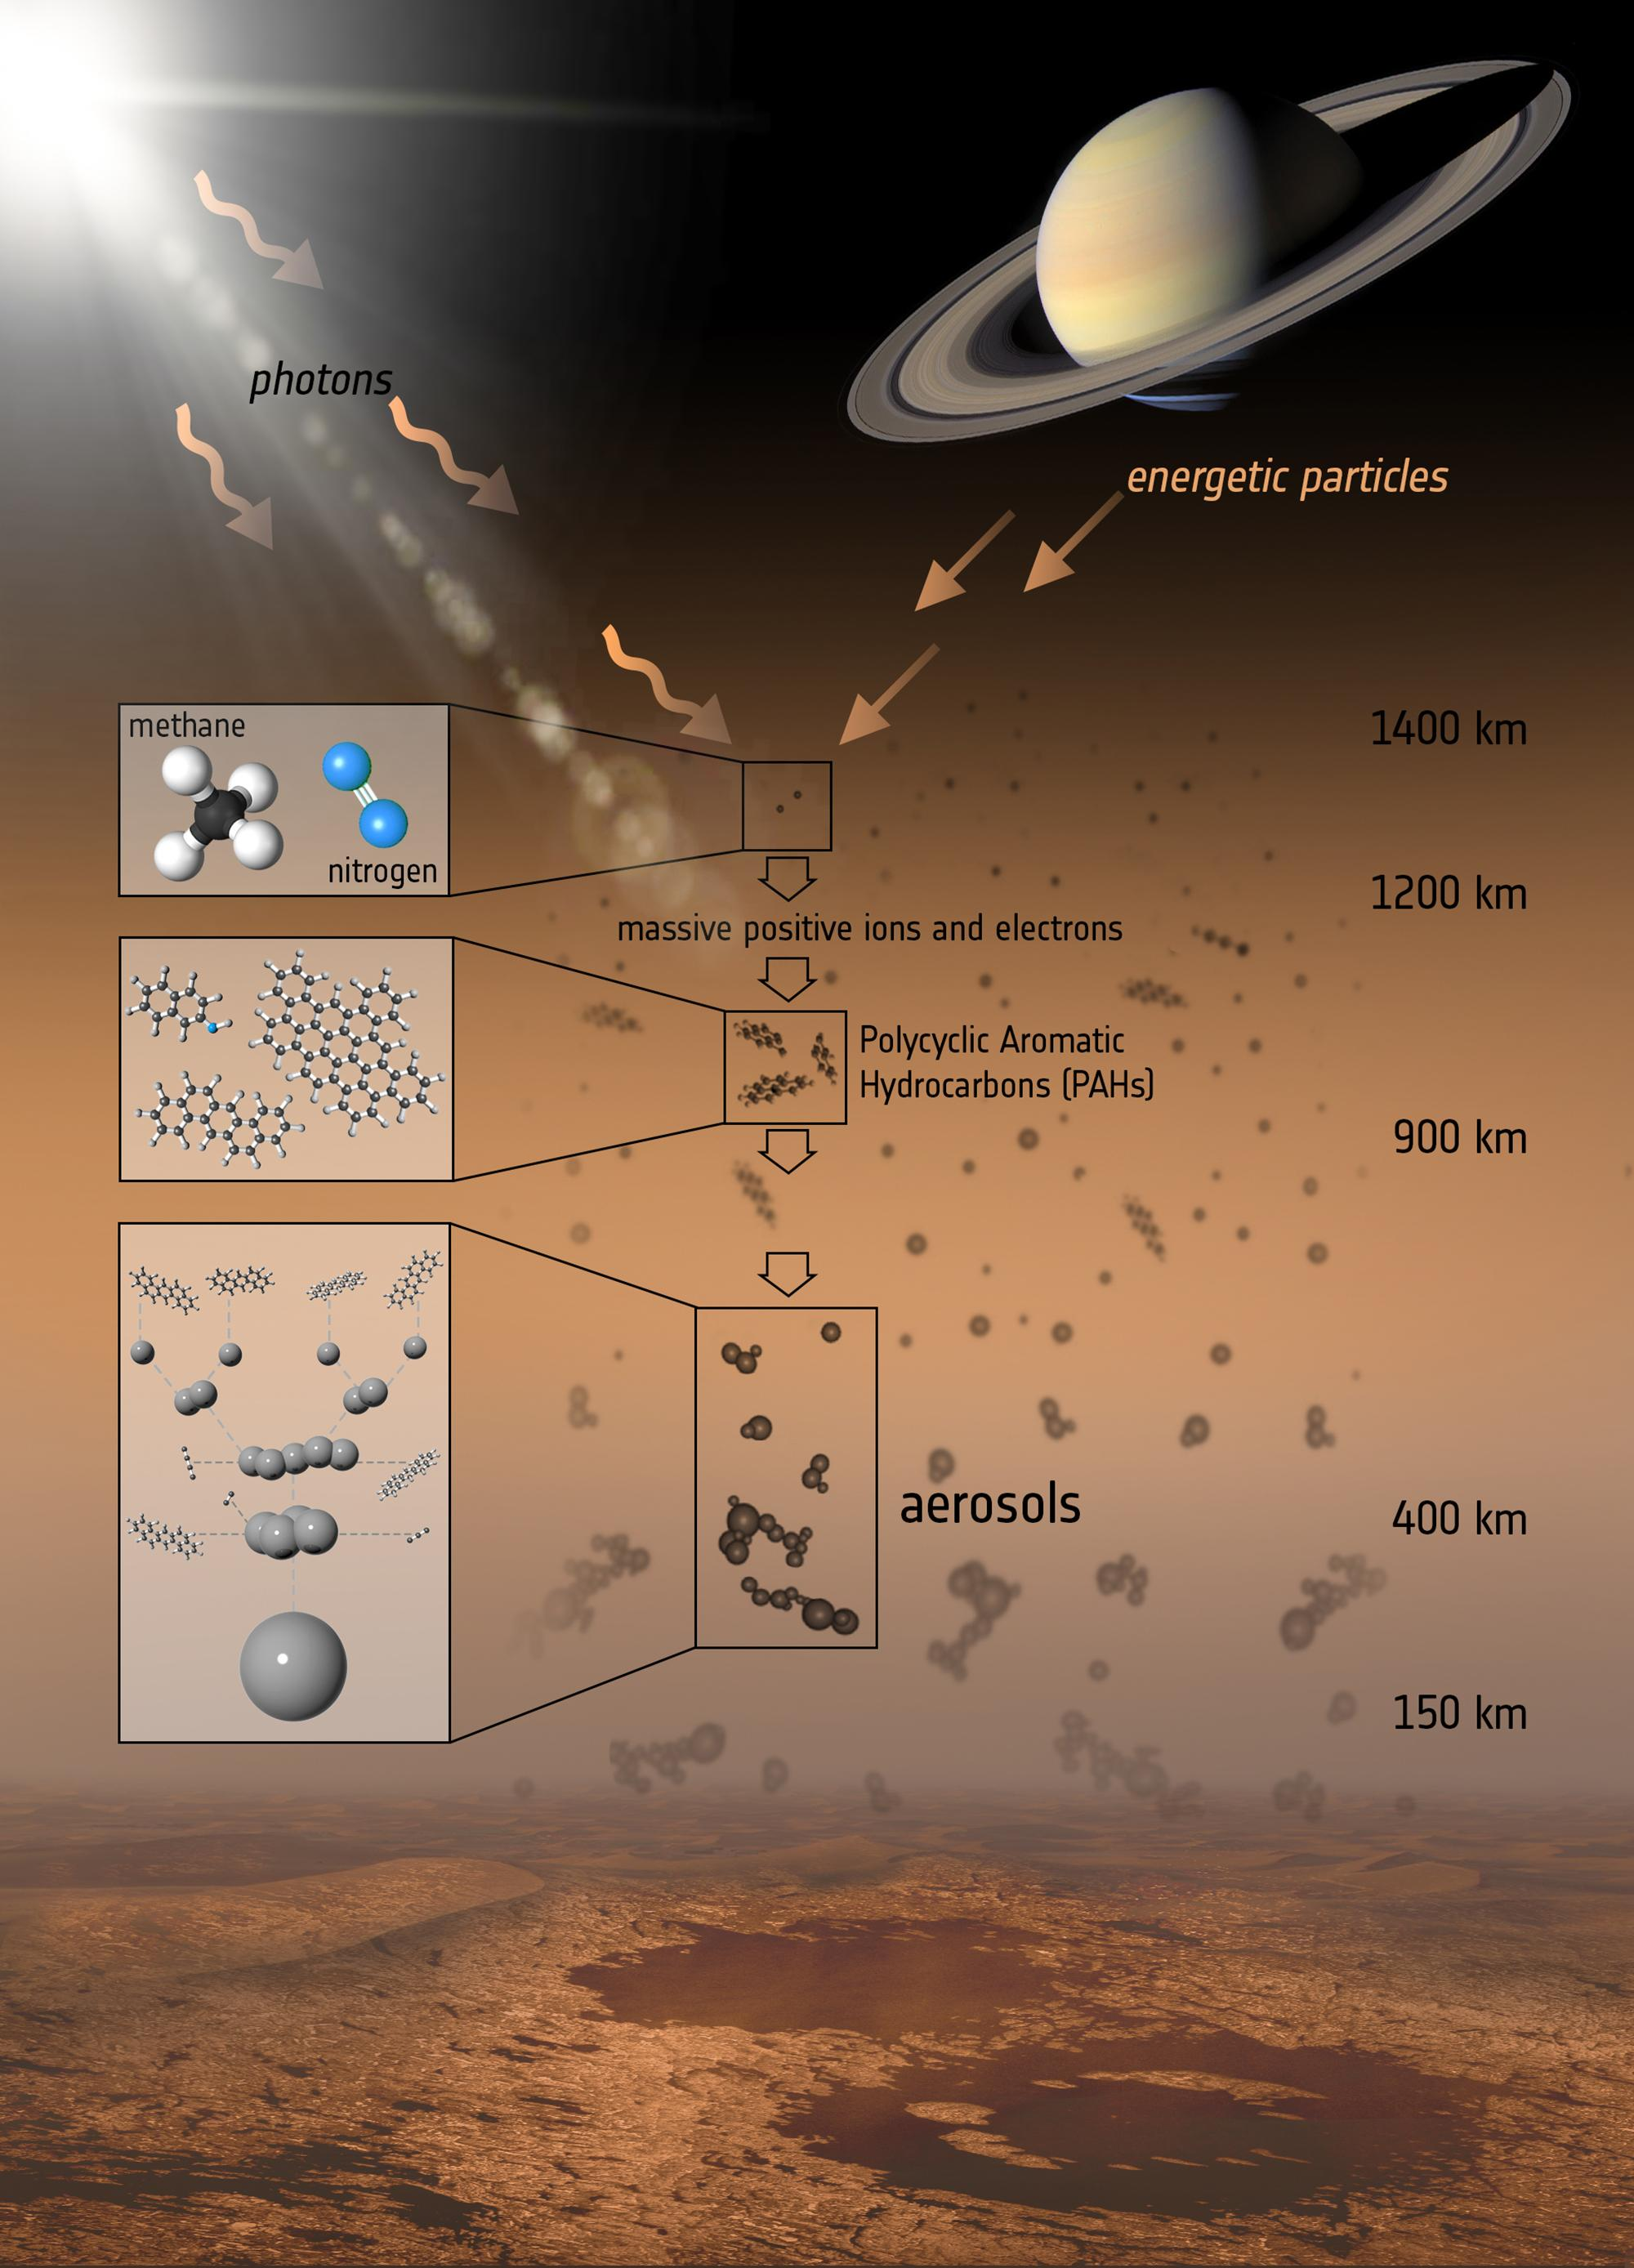 The formation of organic compounds in Titan's atmosphere, which contribute to the hazy that obscures the surface.